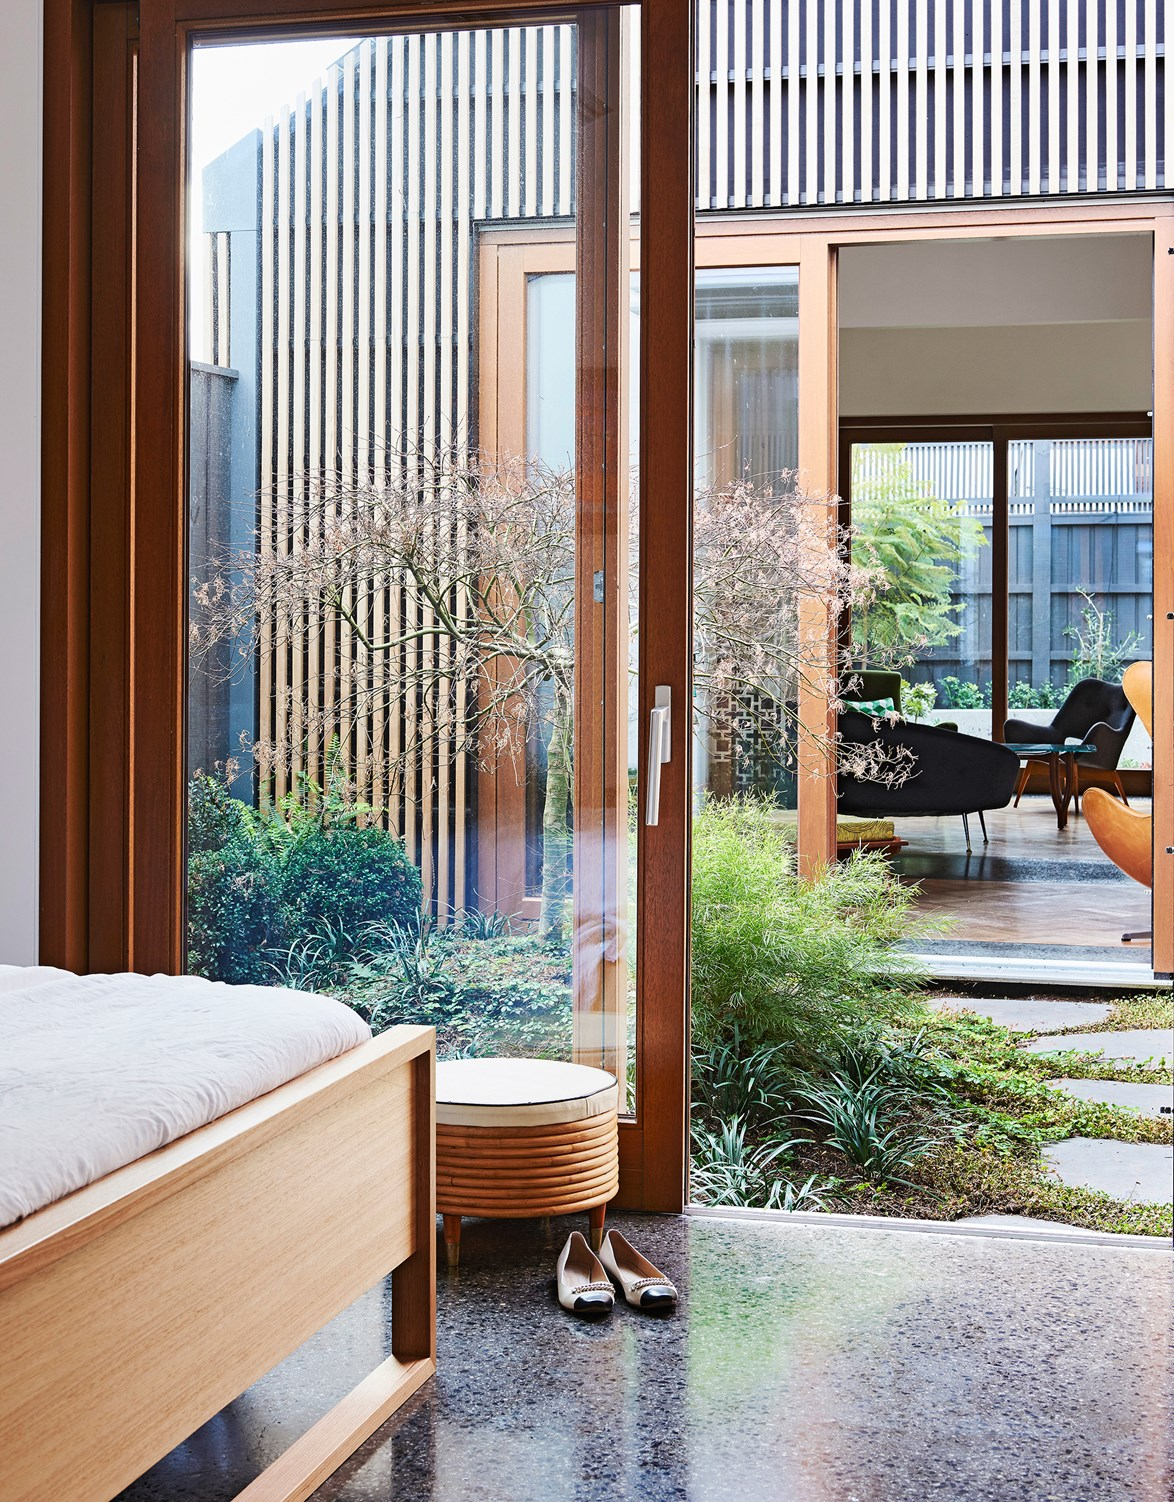 "When a pair of [mid-century modern design enthusiasts built their home](https://www.homestolove.com.au/melbourne-house-by-steffen-welsch-architects-4783|target=""_blank""), a set of internal courtyards were an absolute *must*. ""I love having a garden to tinker with and the freedom the pets have,"" says the owner. *Photography: Eve Wilson / Styling: Heather Nette King / Story: Australian House & Garden*"